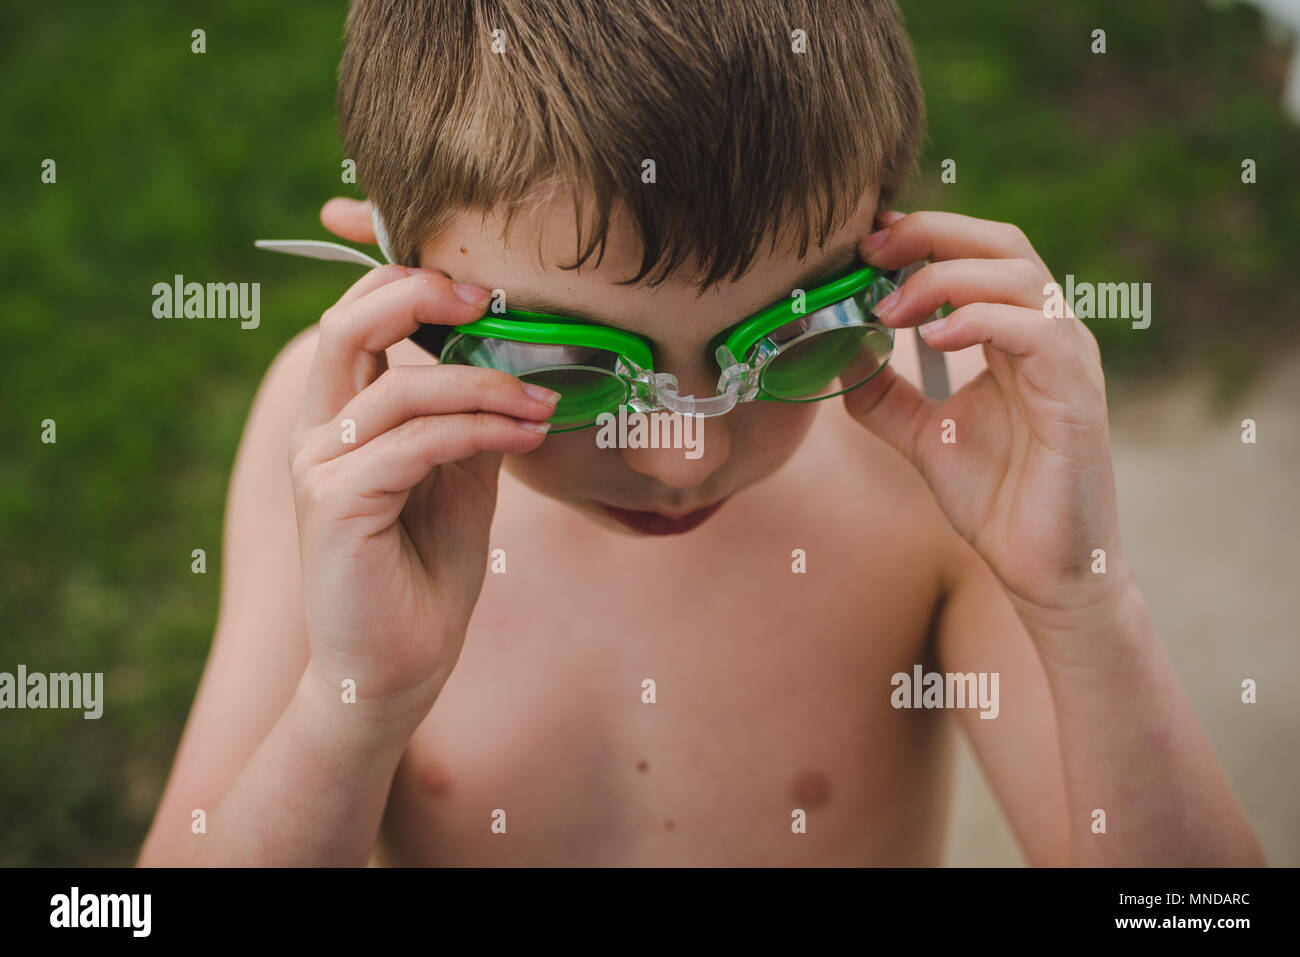 A boy wearing green swimming goggles on a sunny summer day - Stock Image